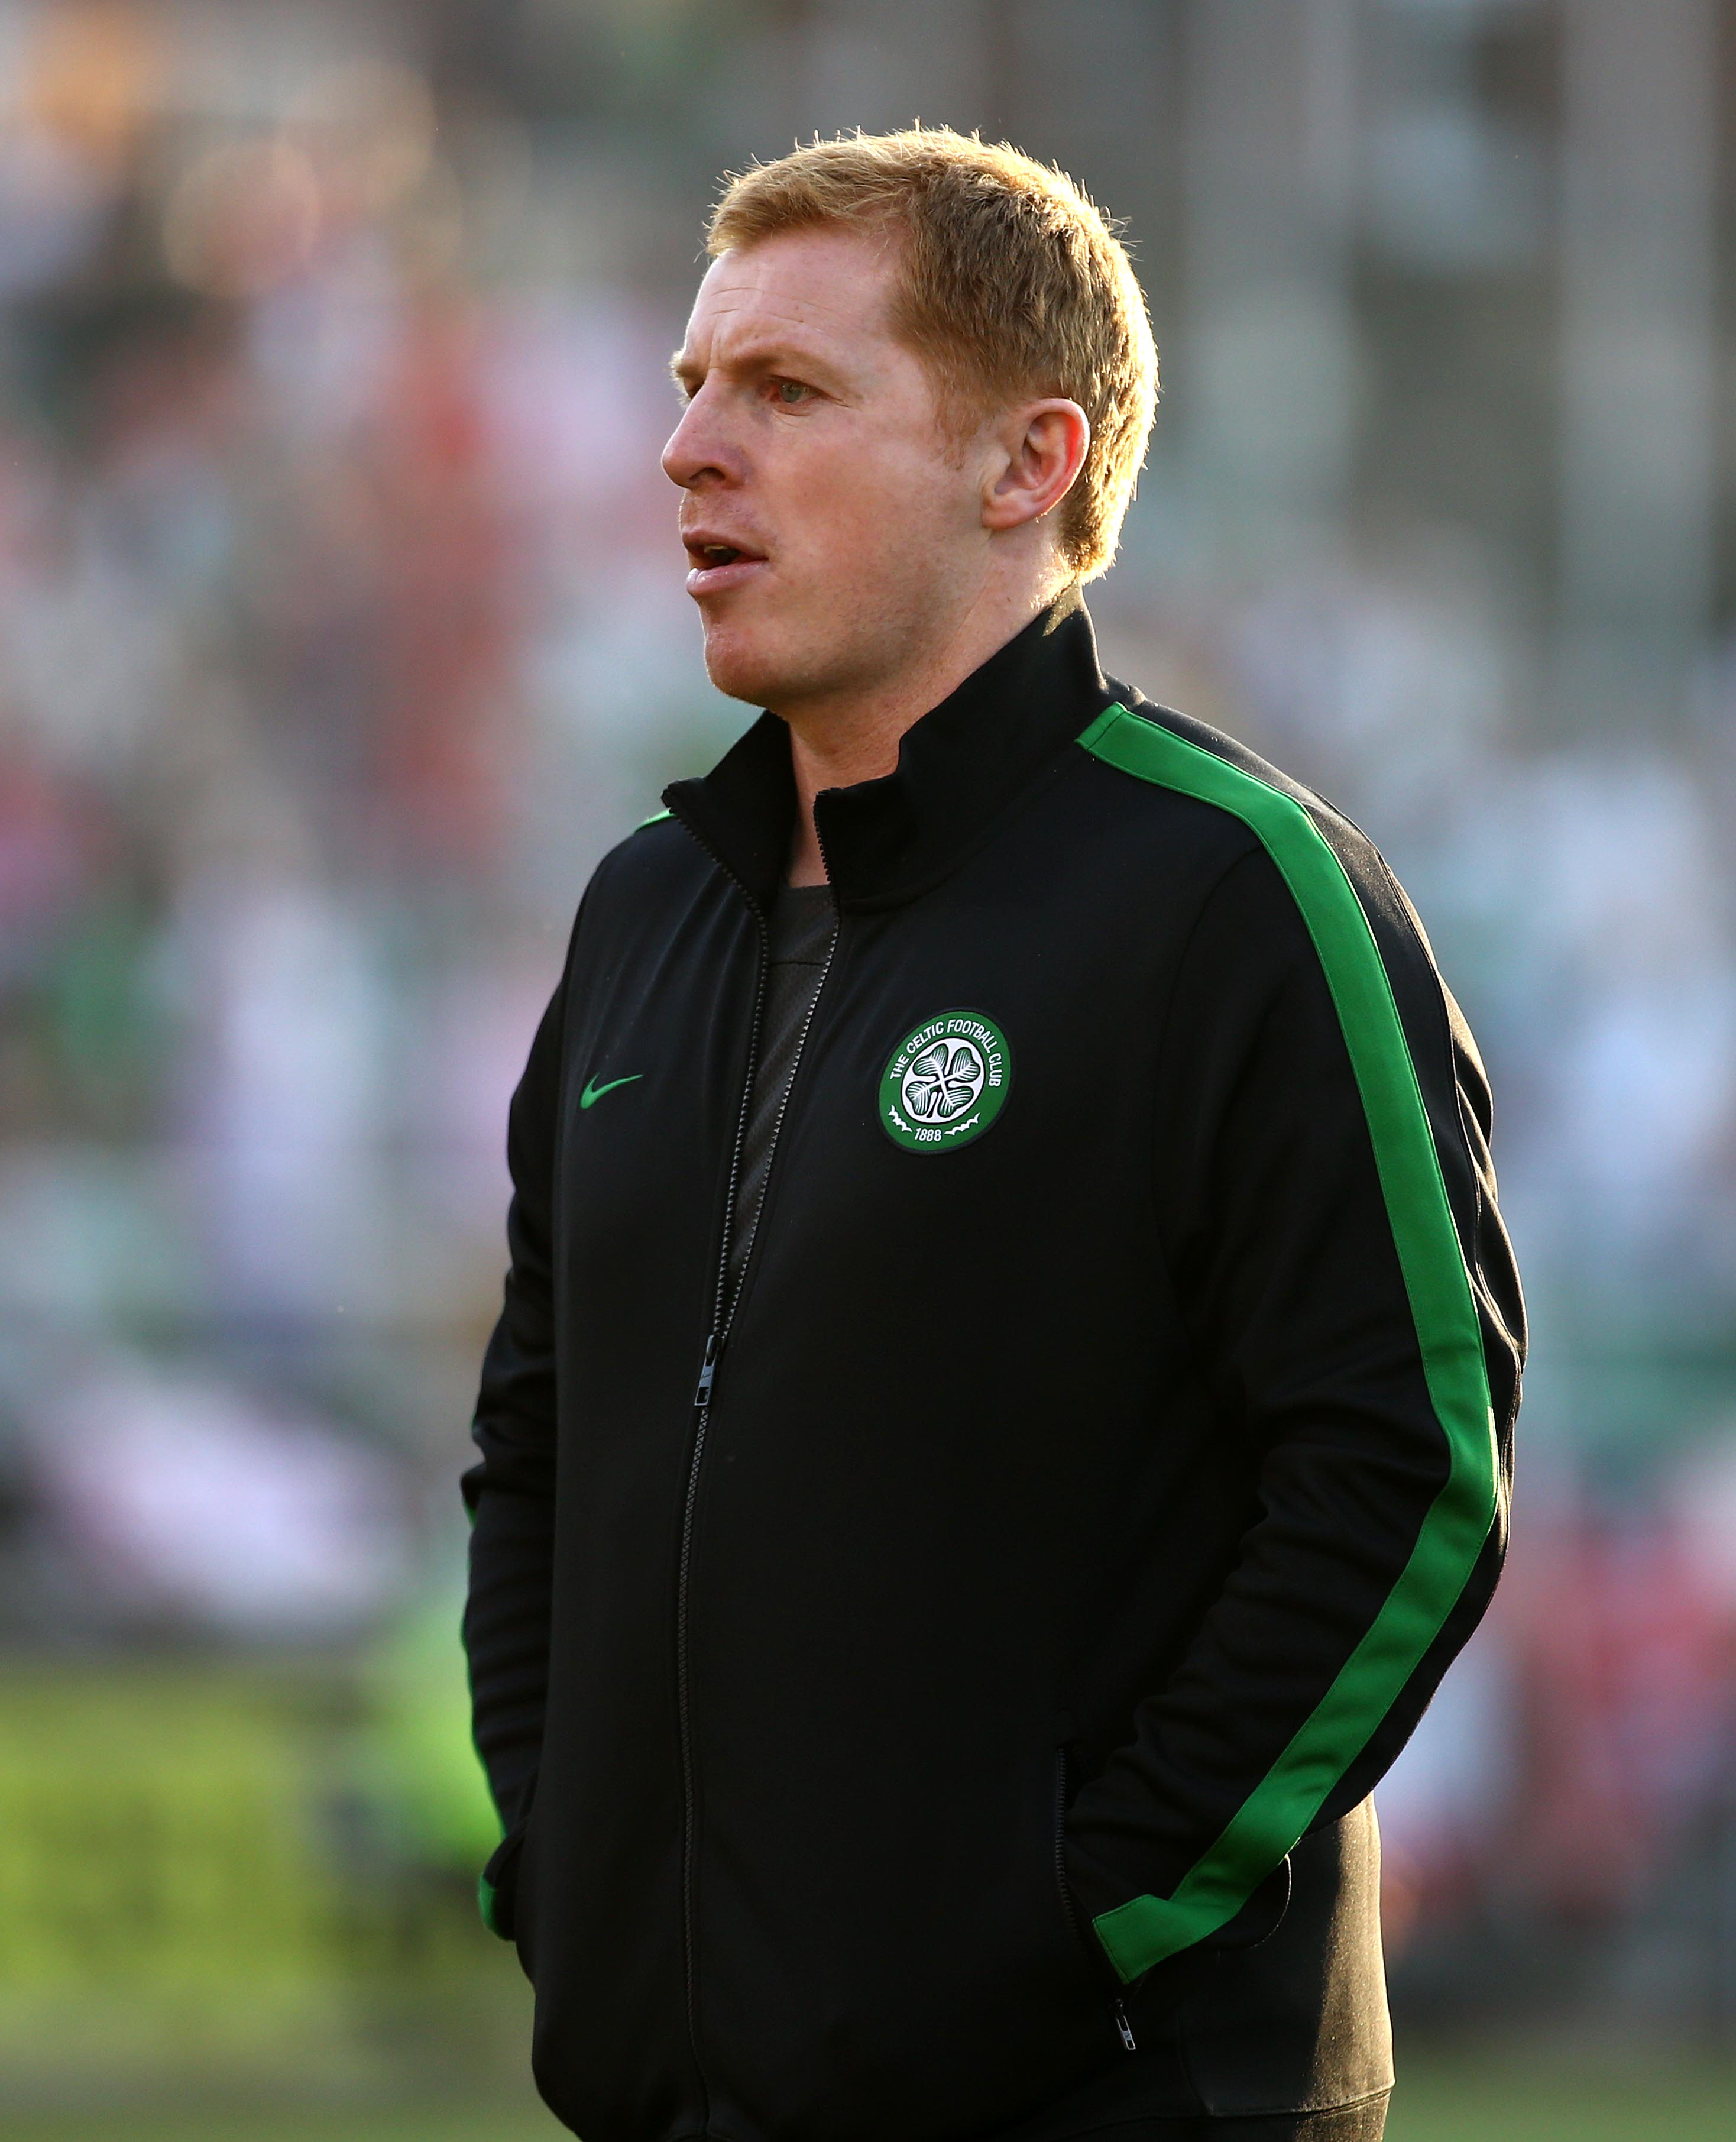 Despite Saturday's disappointment at Ibrox leaving their 10-in-a-row ambitions hanging by a thread, Neil Lennon and his players must not throw in the towel